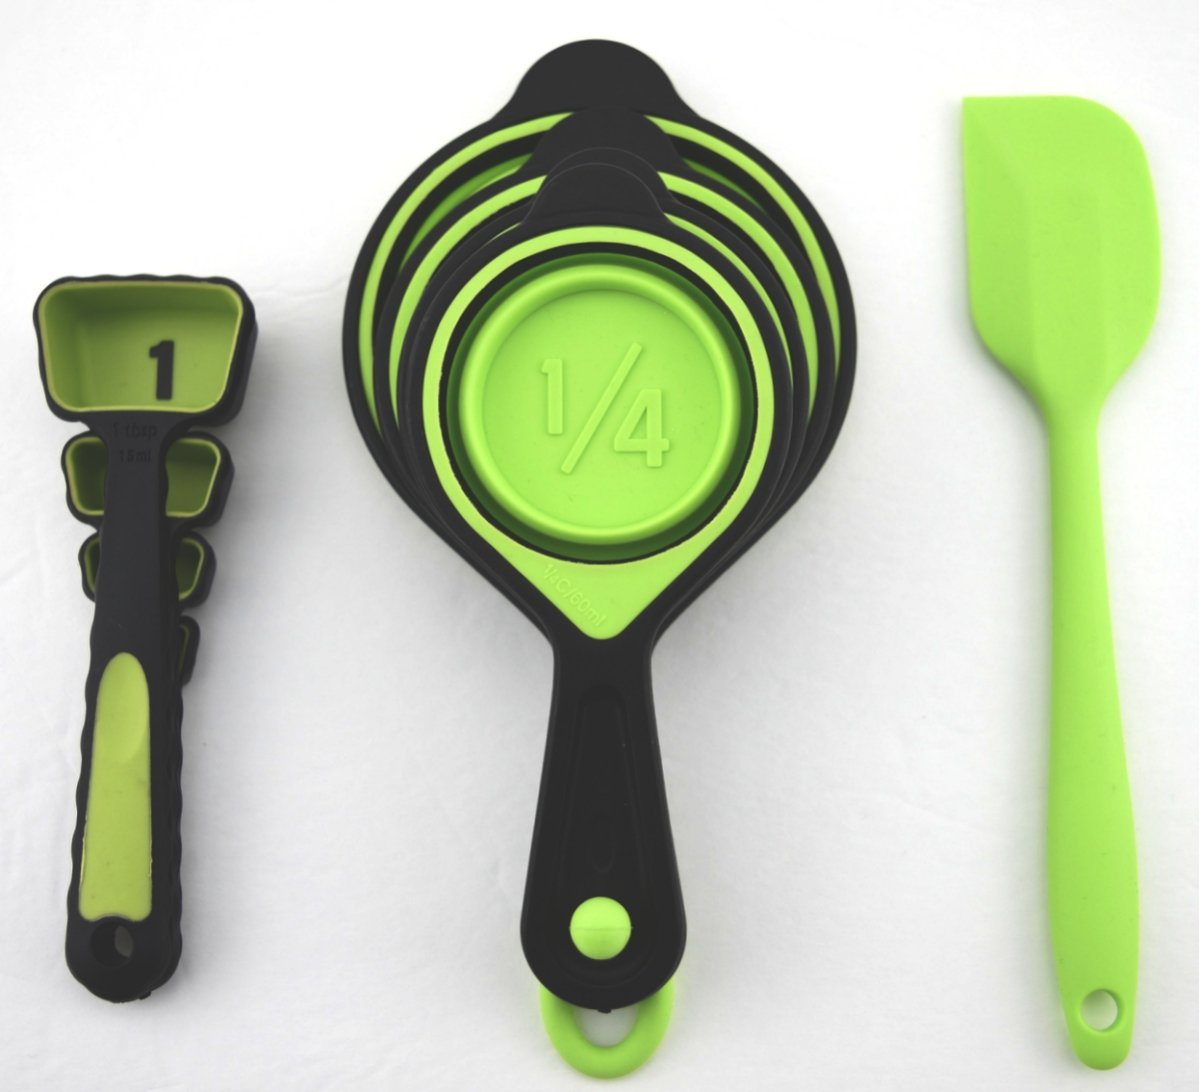 Collapsible SILICONE MEASURING CUPS AND SPOONS - 6 COLOR OPTIONS ...